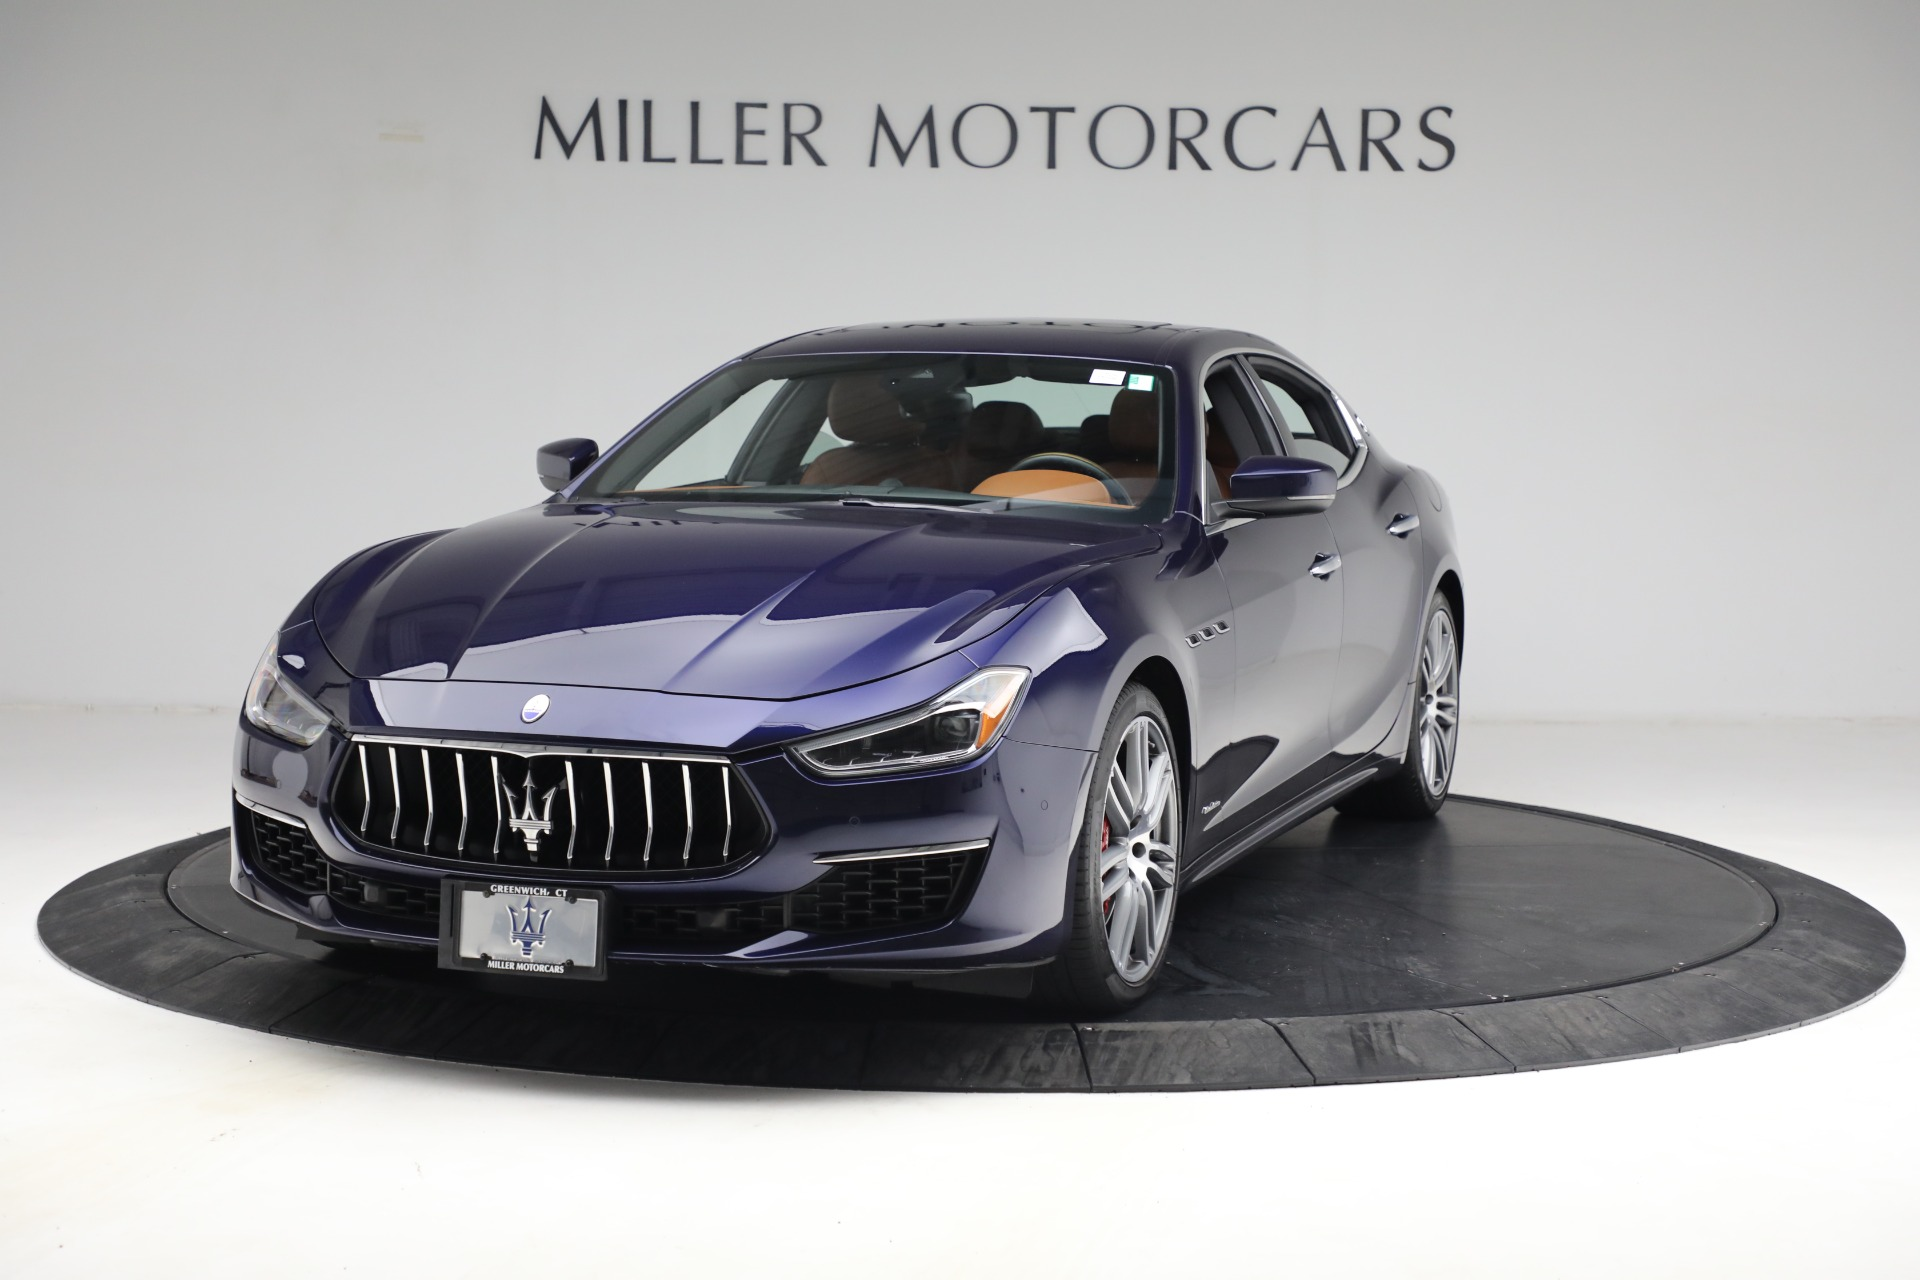 Used 2018 Maserati Ghibli S Q4 GranLusso for sale $56,900 at Pagani of Greenwich in Greenwich CT 06830 1